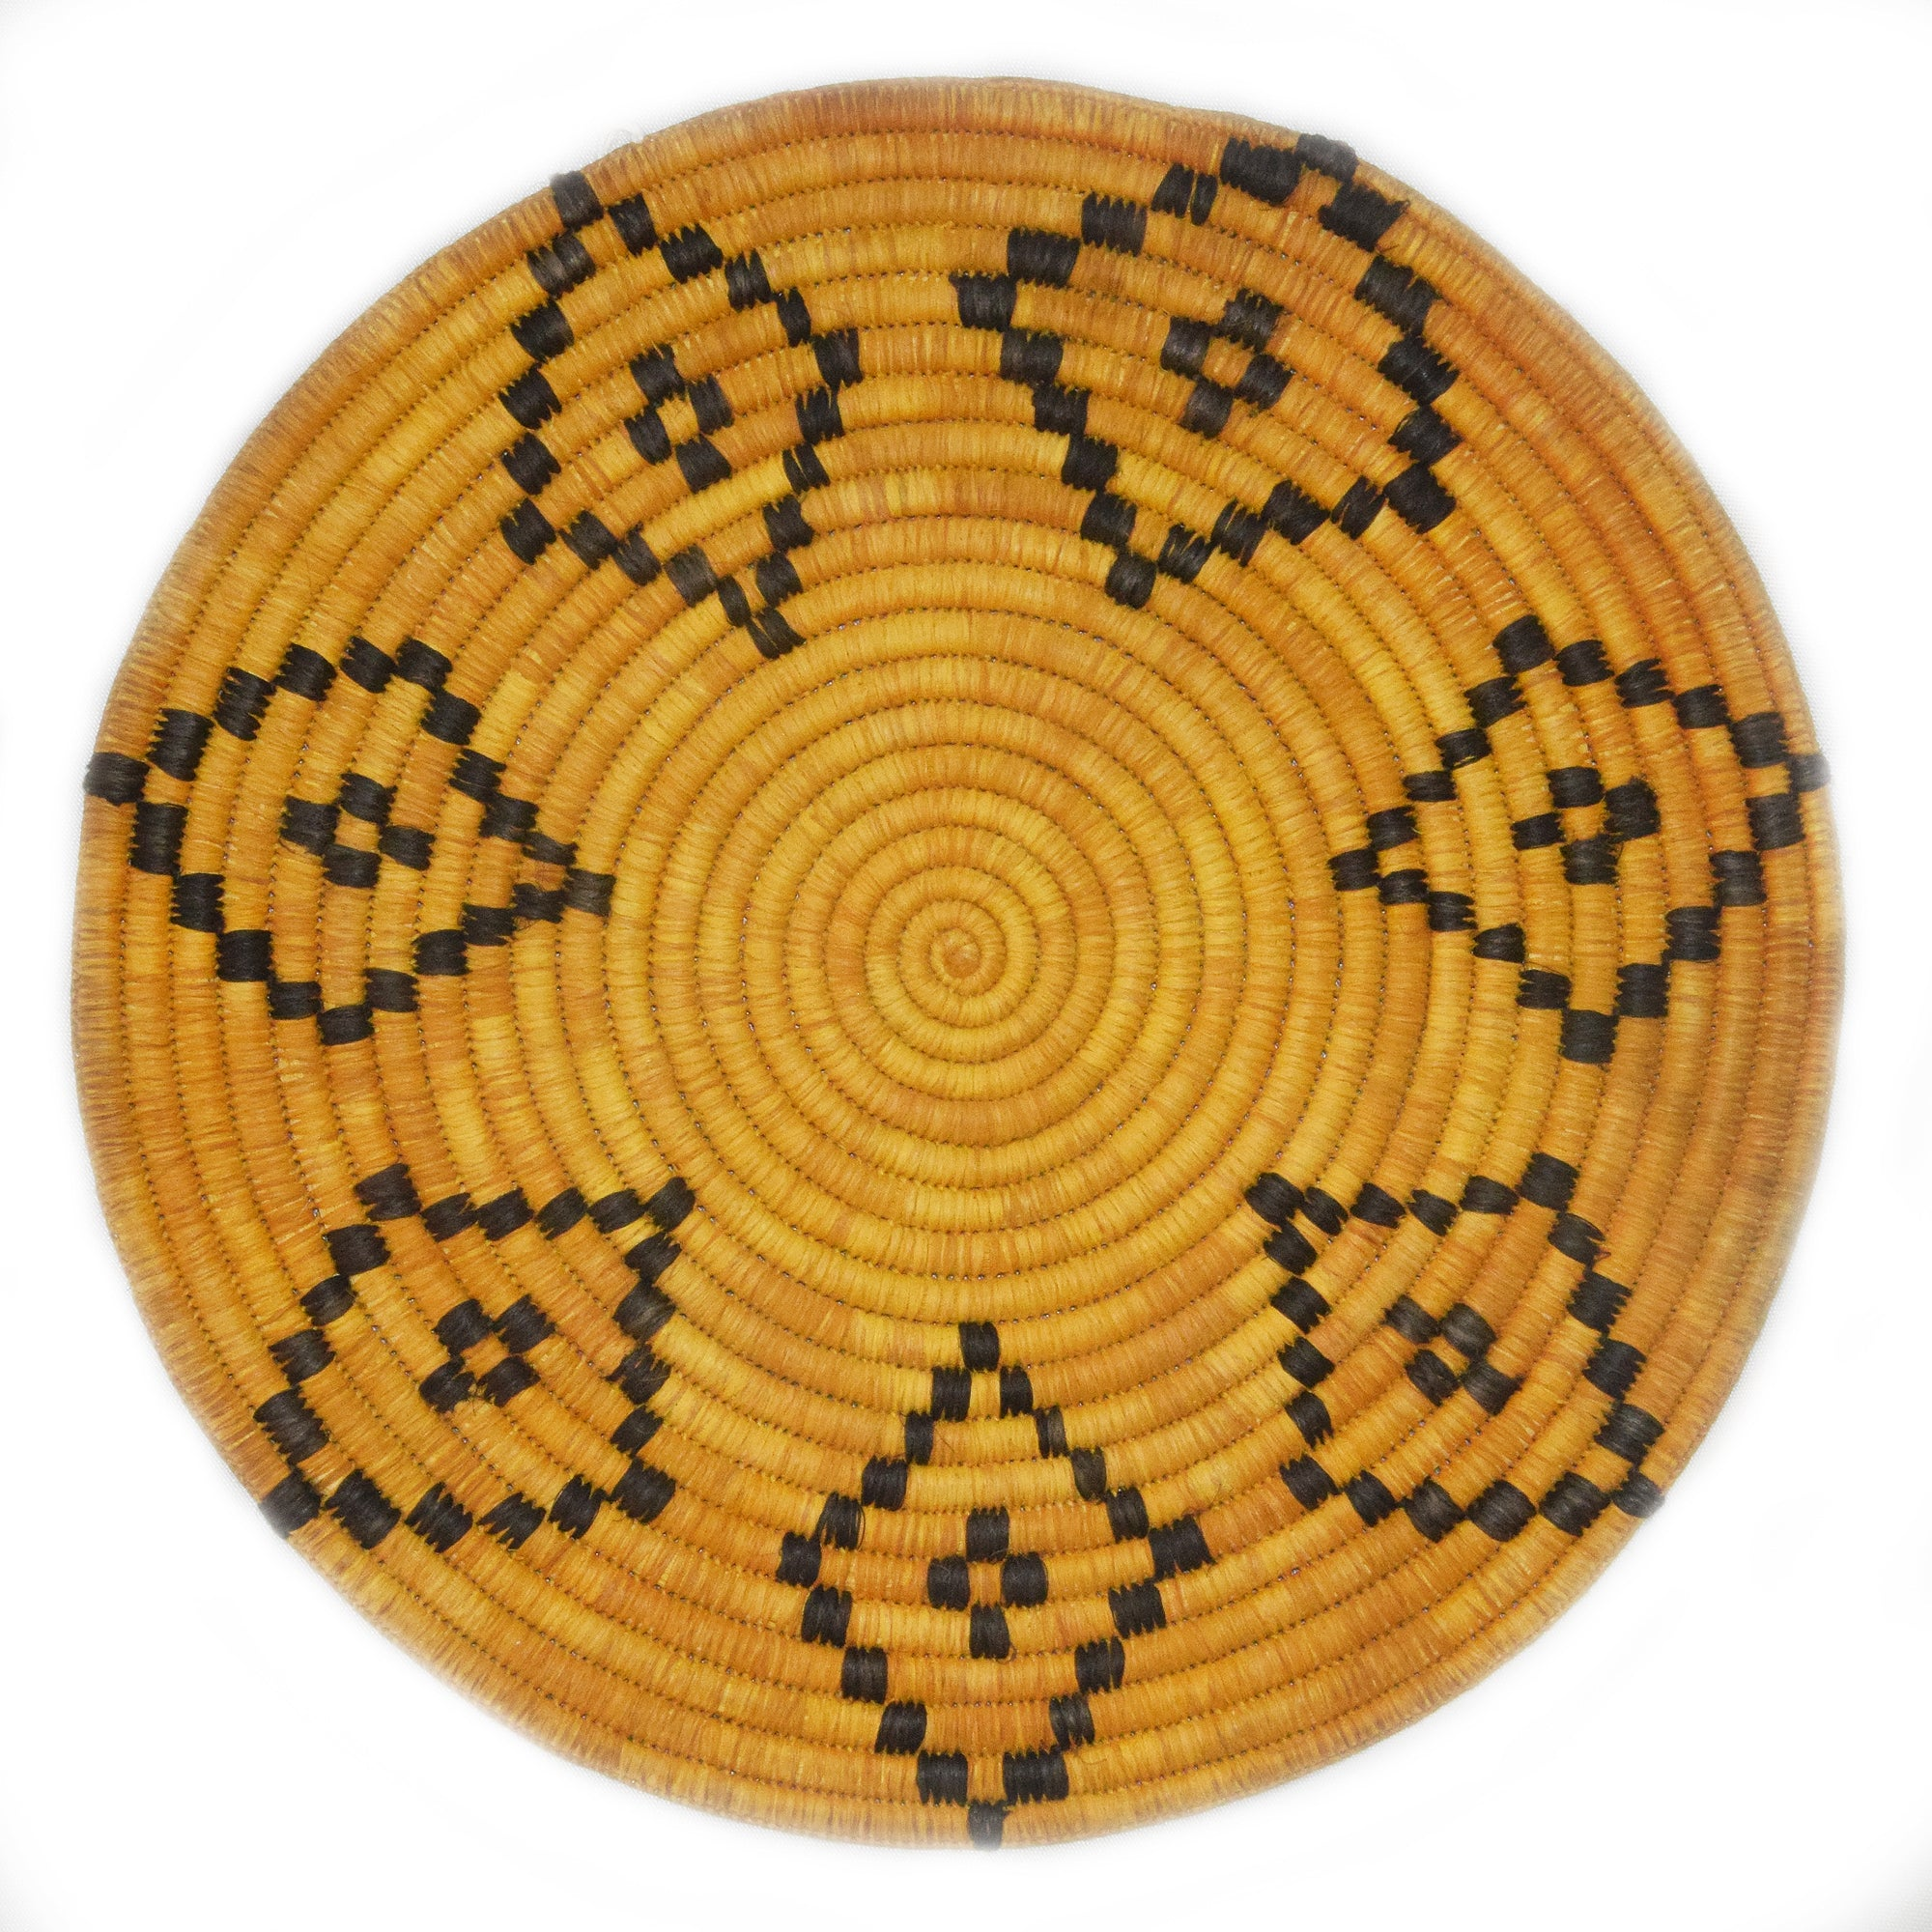 Woven hot pad (trivet) and center piece - yellow with diamond figures (TP103Y)